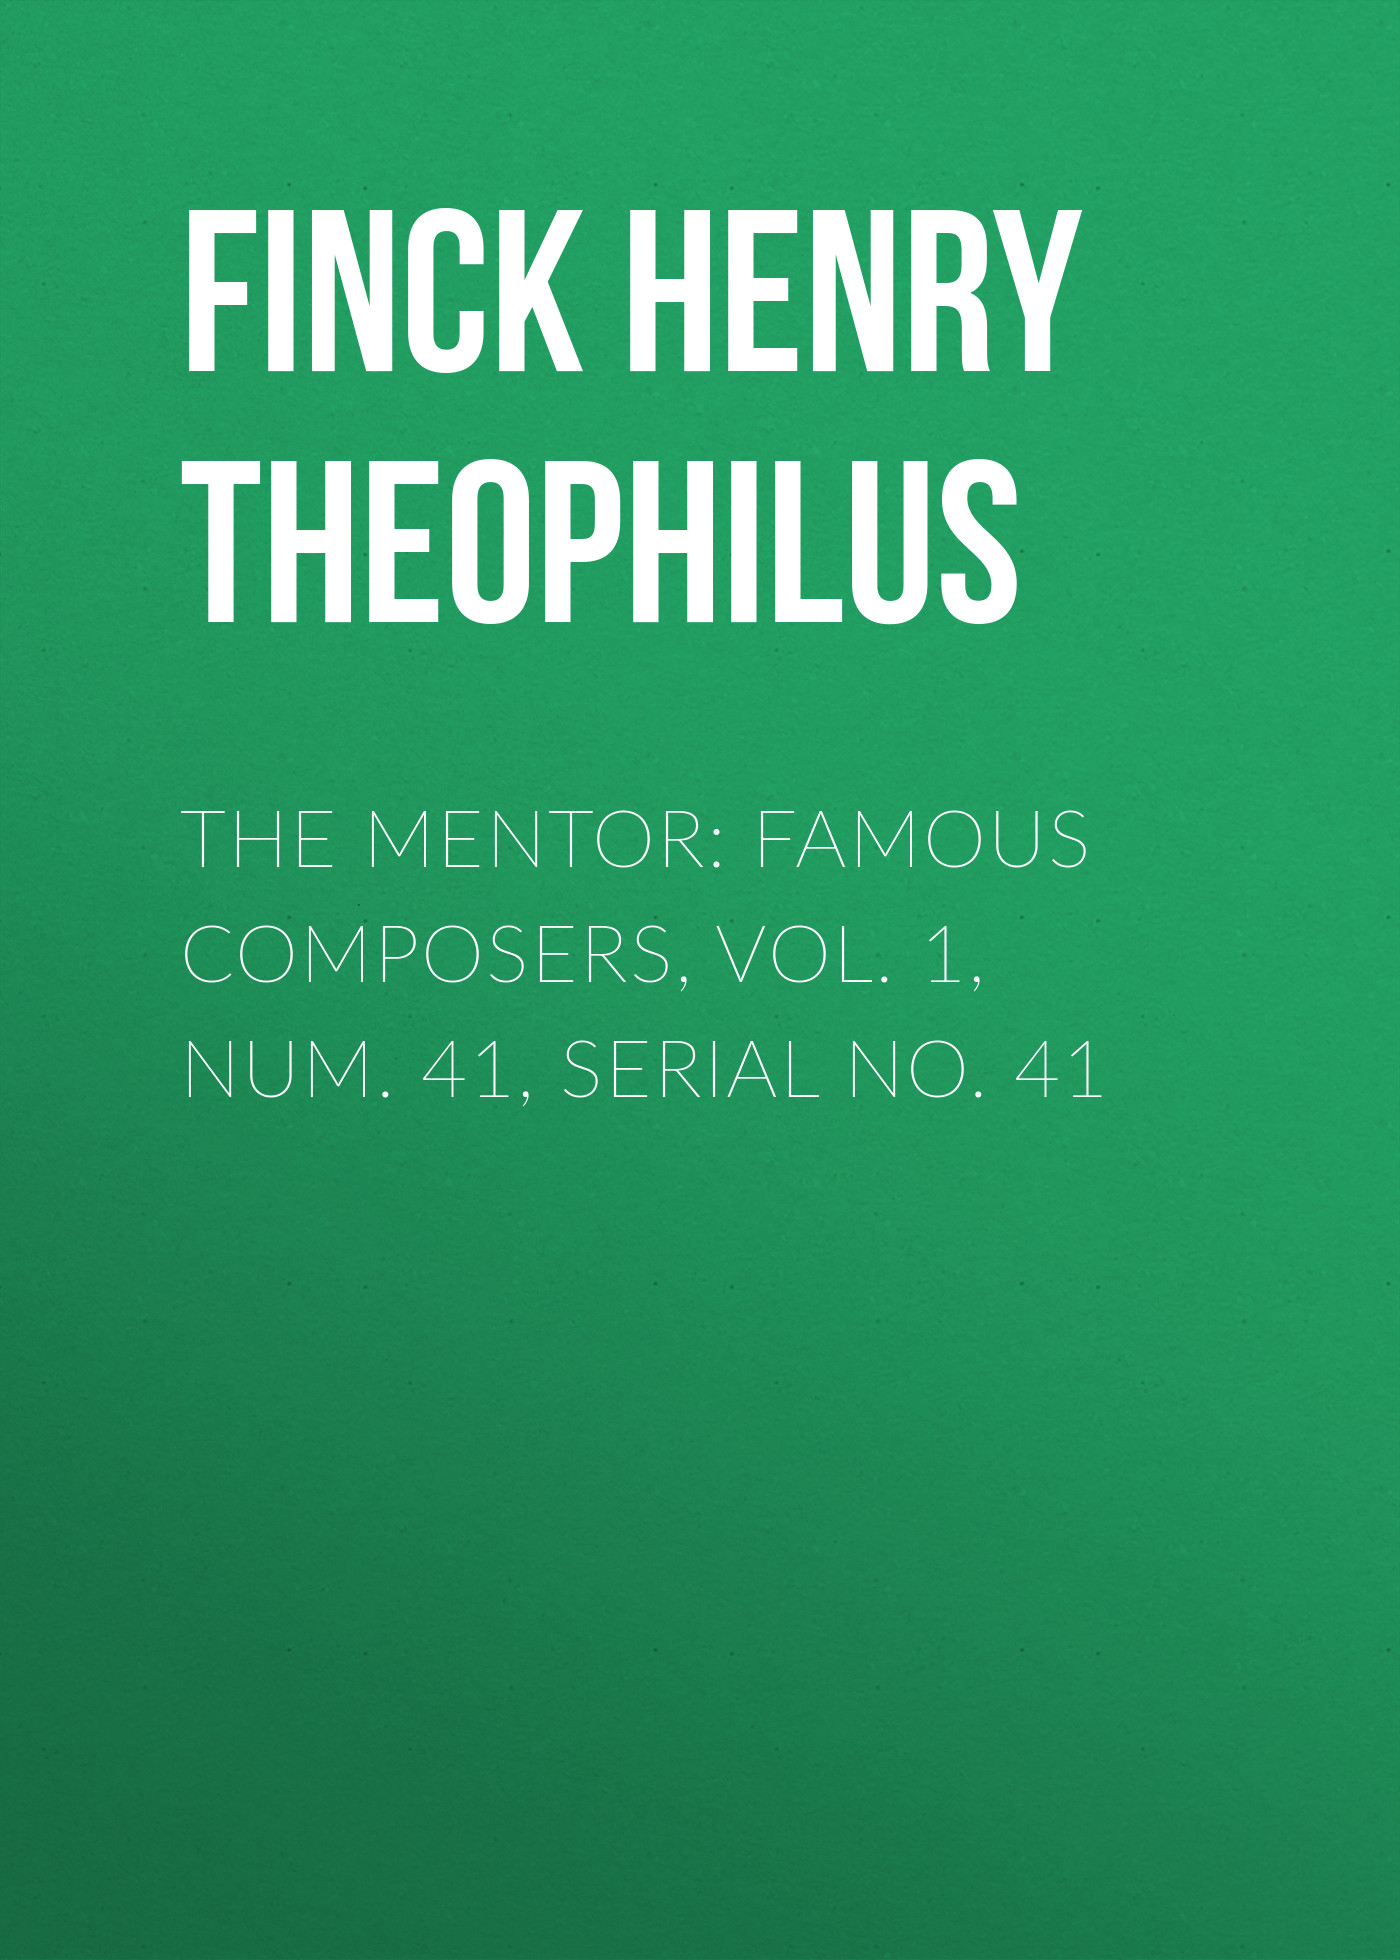 Finck Henry Theophilus The Mentor: Famous Composers, Vol. 1, Num. 41, Serial No. 41 е н борисова meet the famous composers part 1